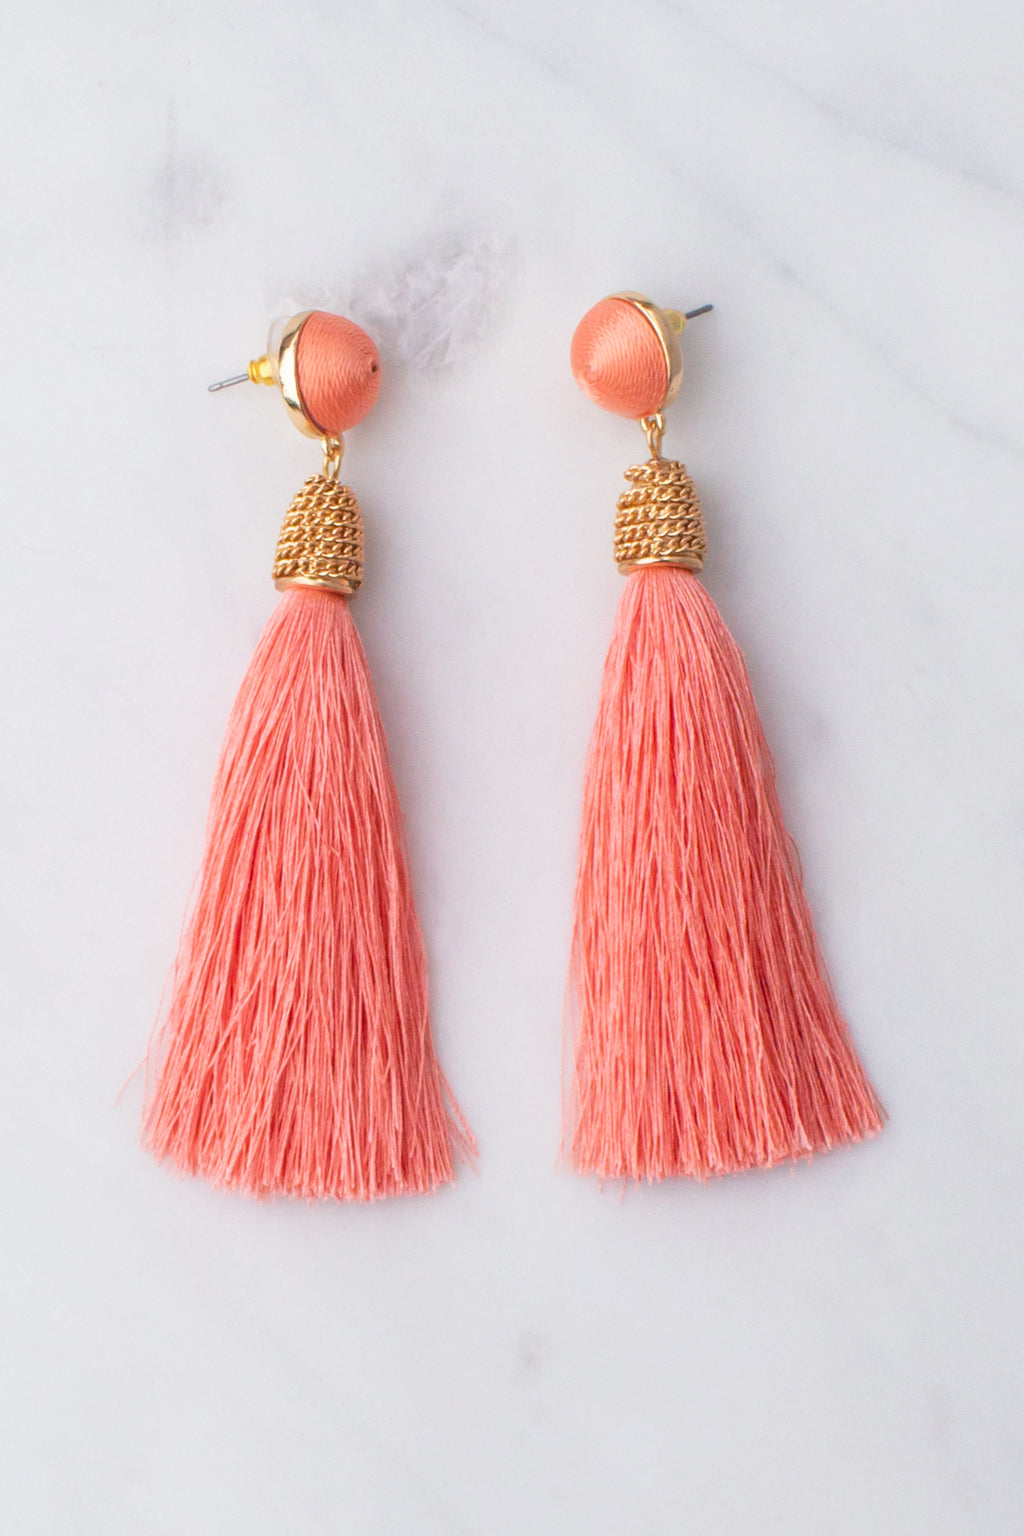 pink tassel earrings, cute pink earrings, trendy pink earrings, cute tassel earrings, trendy tassel earrings